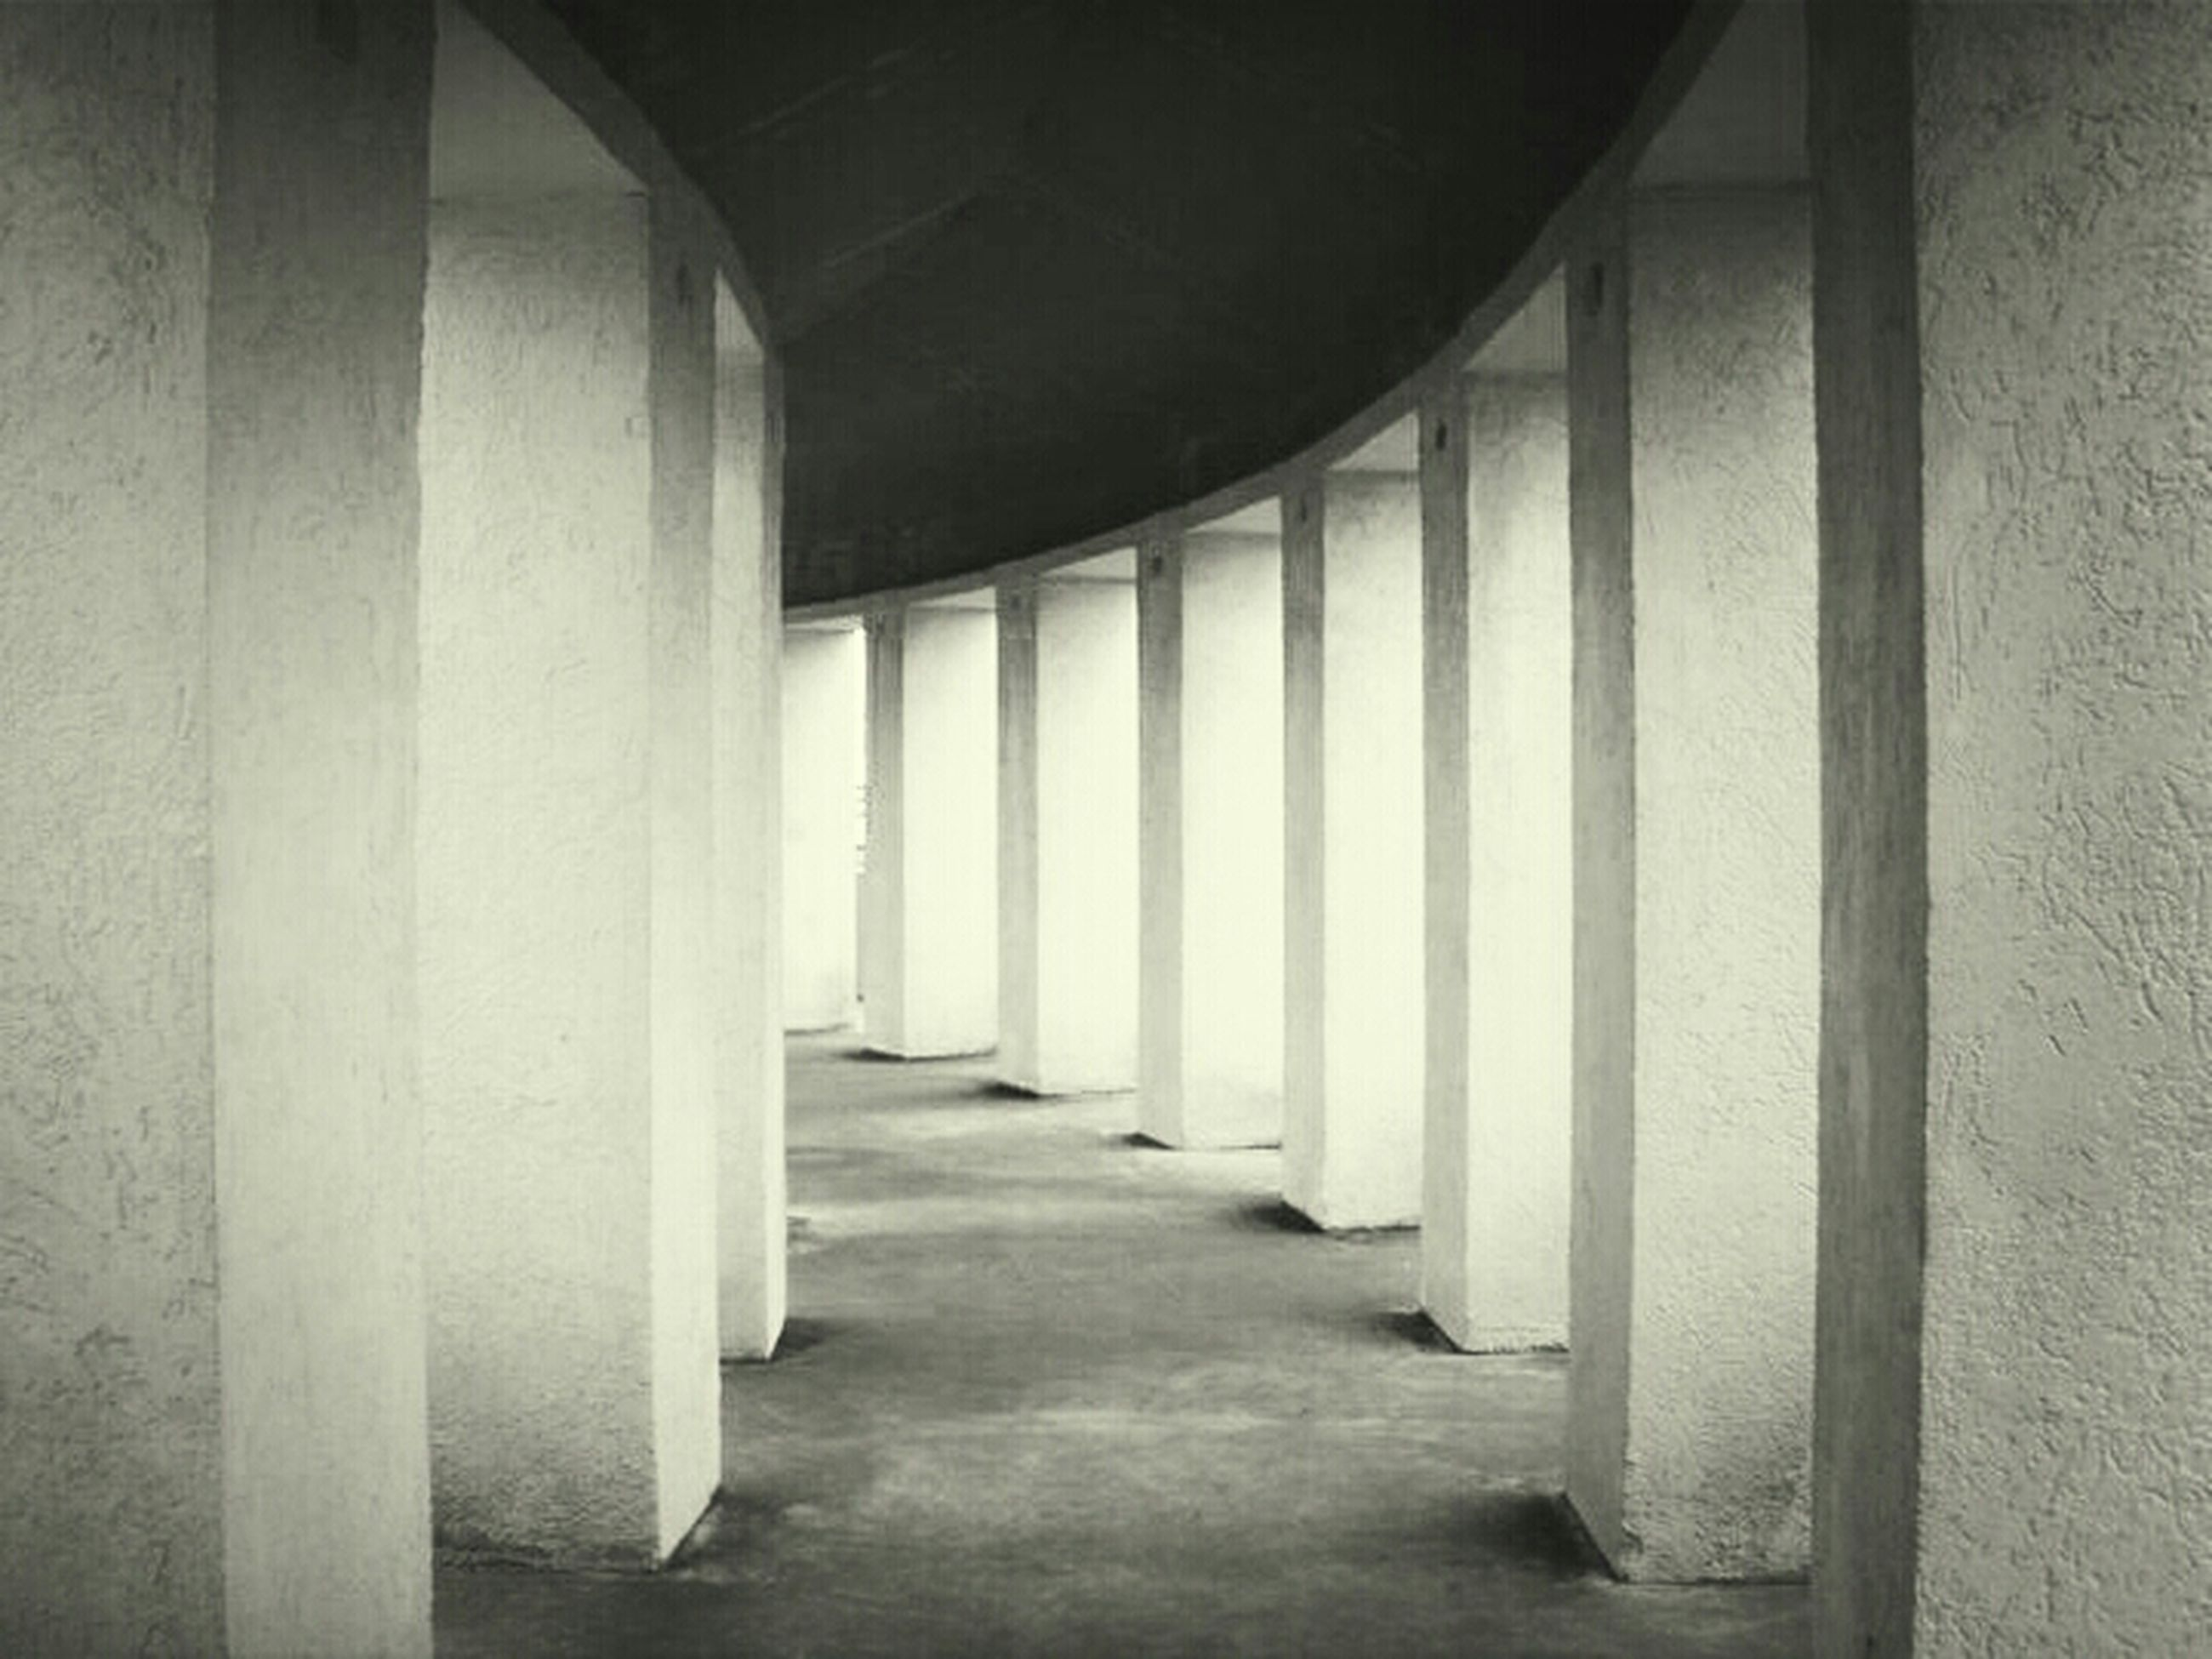 architecture, built structure, indoors, corridor, the way forward, door, architectural column, window, building, column, wall - building feature, empty, building exterior, sunlight, diminishing perspective, wall, doorway, entrance, day, no people